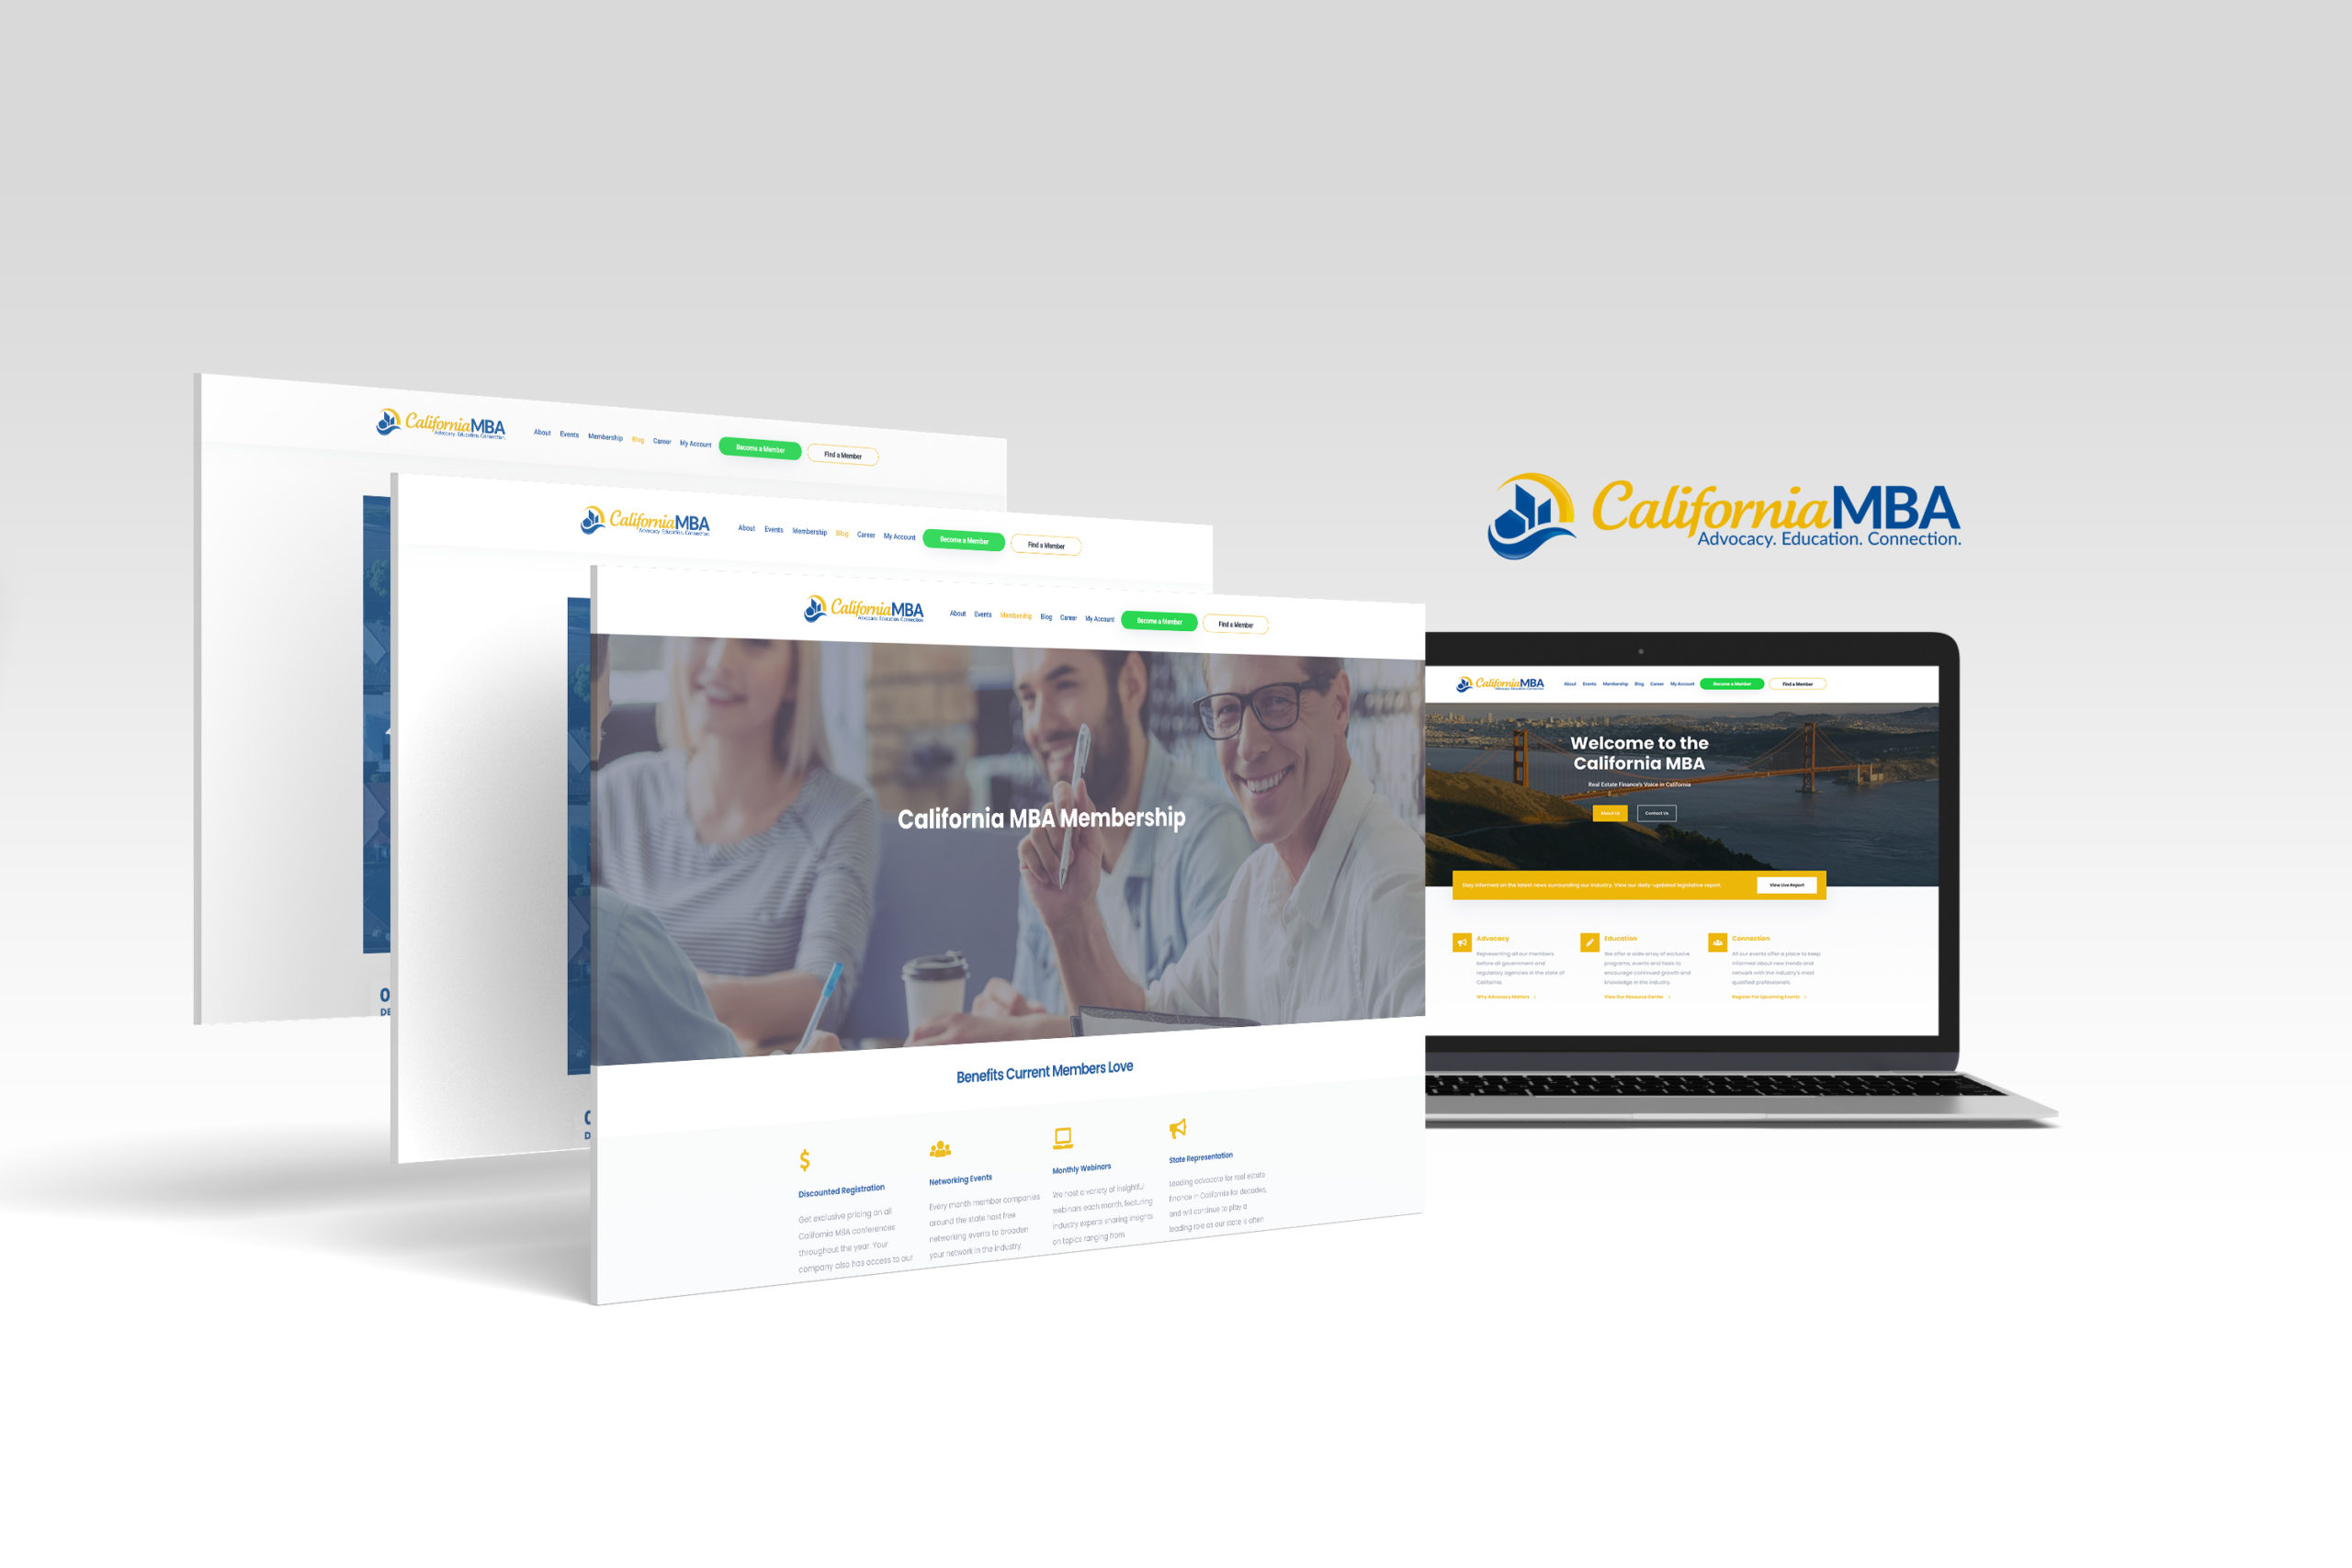 cmba website overview2